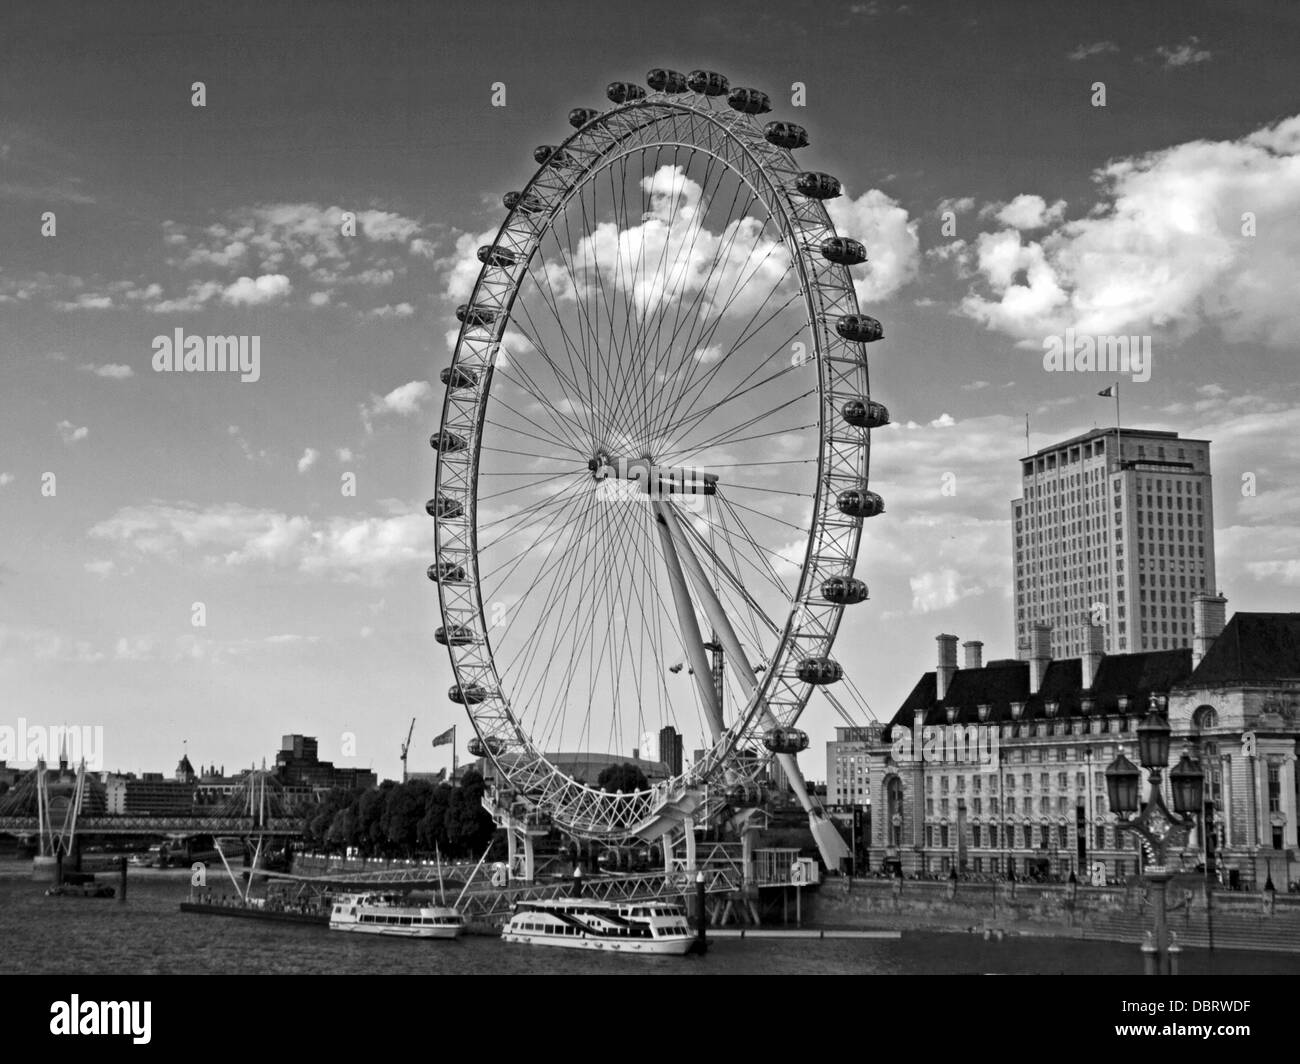 View of the London Eye, located on the South Bank of the River Thames, London, England, United Kingdom - Stock Image